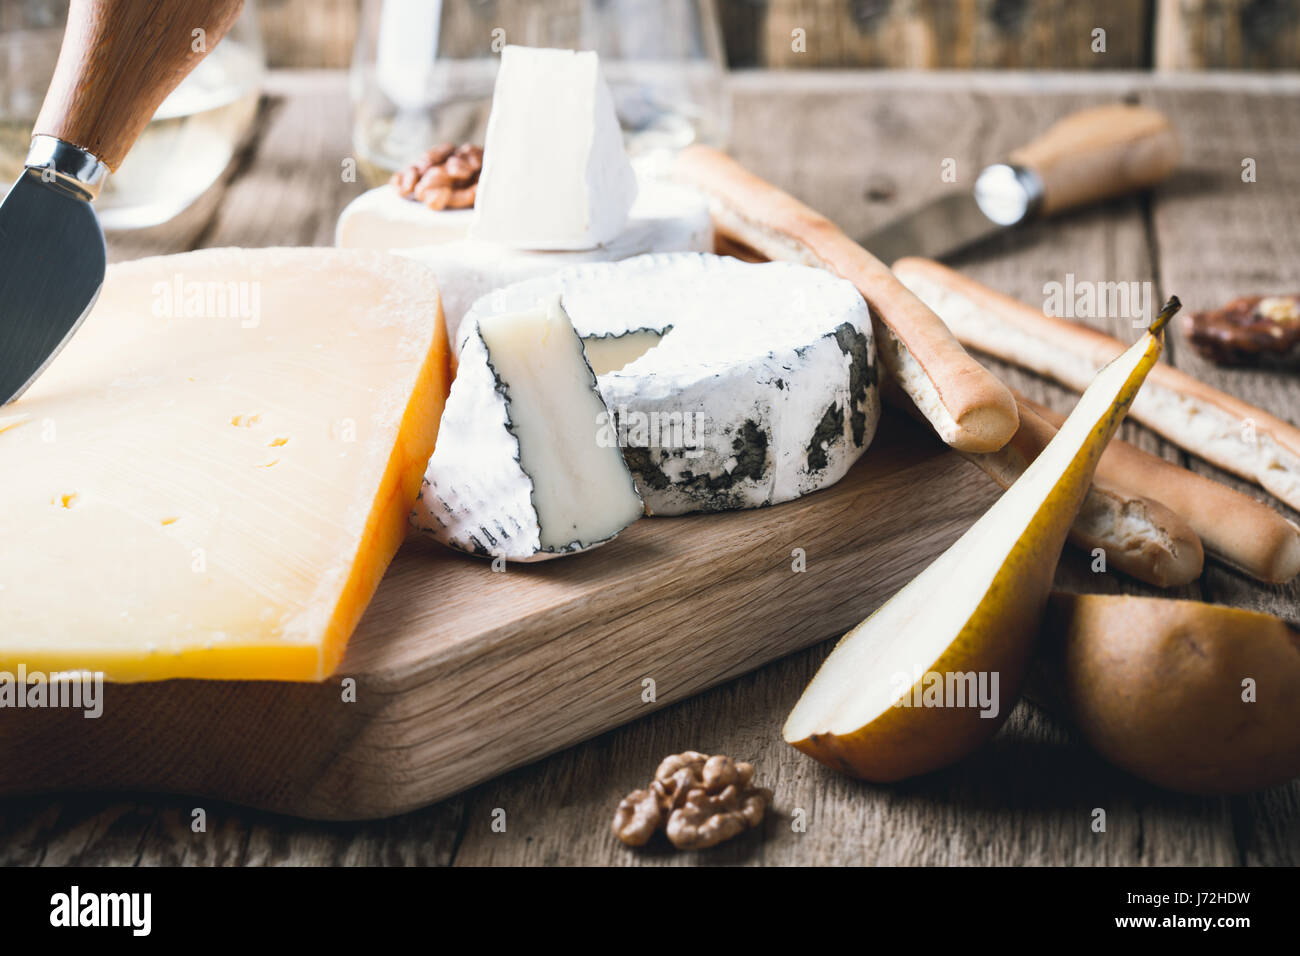 Cheese platter served with white wine, jam and walnuts on wooden board on rustic table - Stock Image